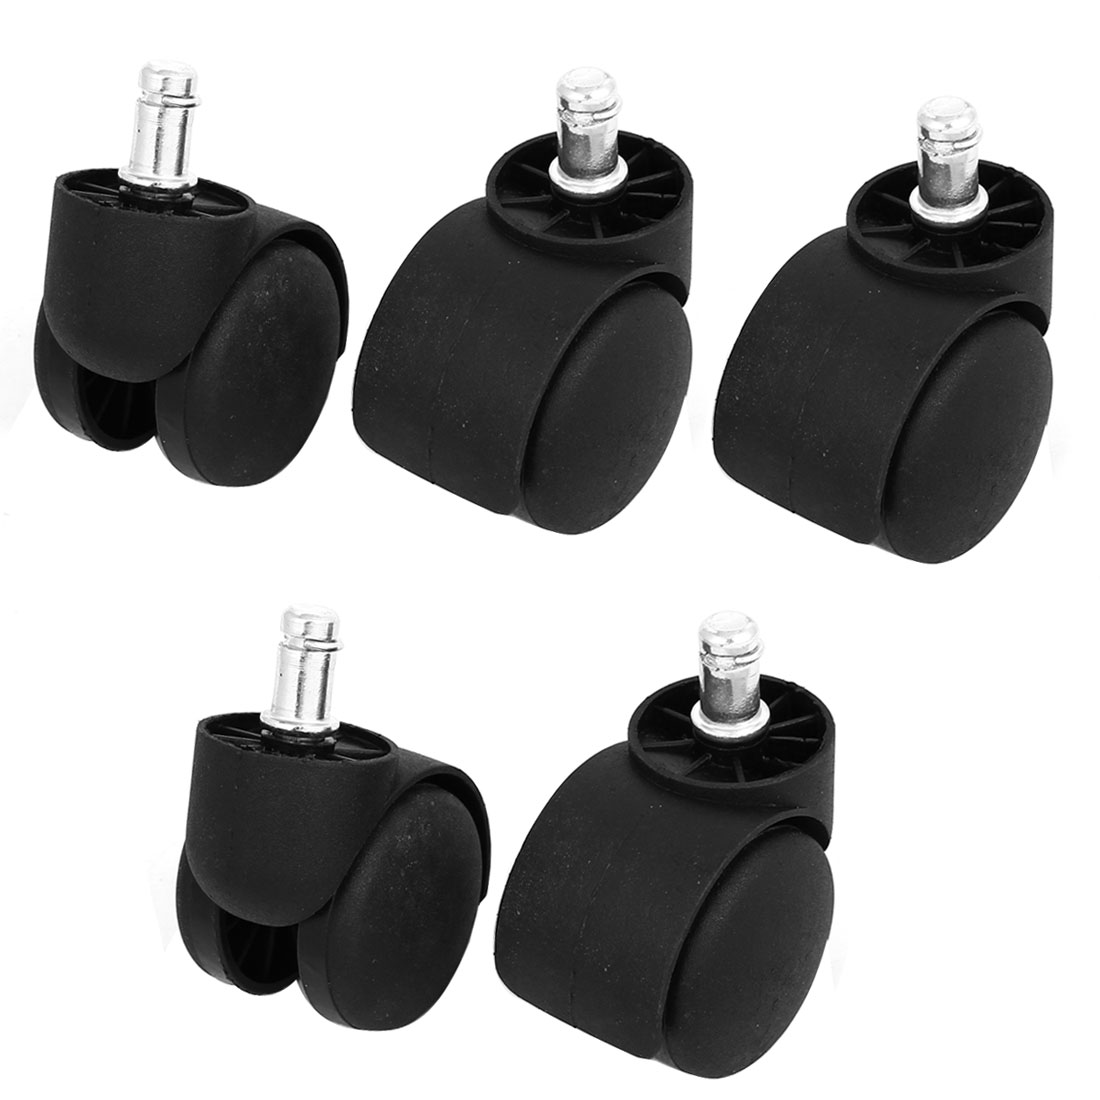 11mm x 22mm Grip Ring Stem Office Chair Swivel Twin Wheel Caster Replacement 5 Pcs